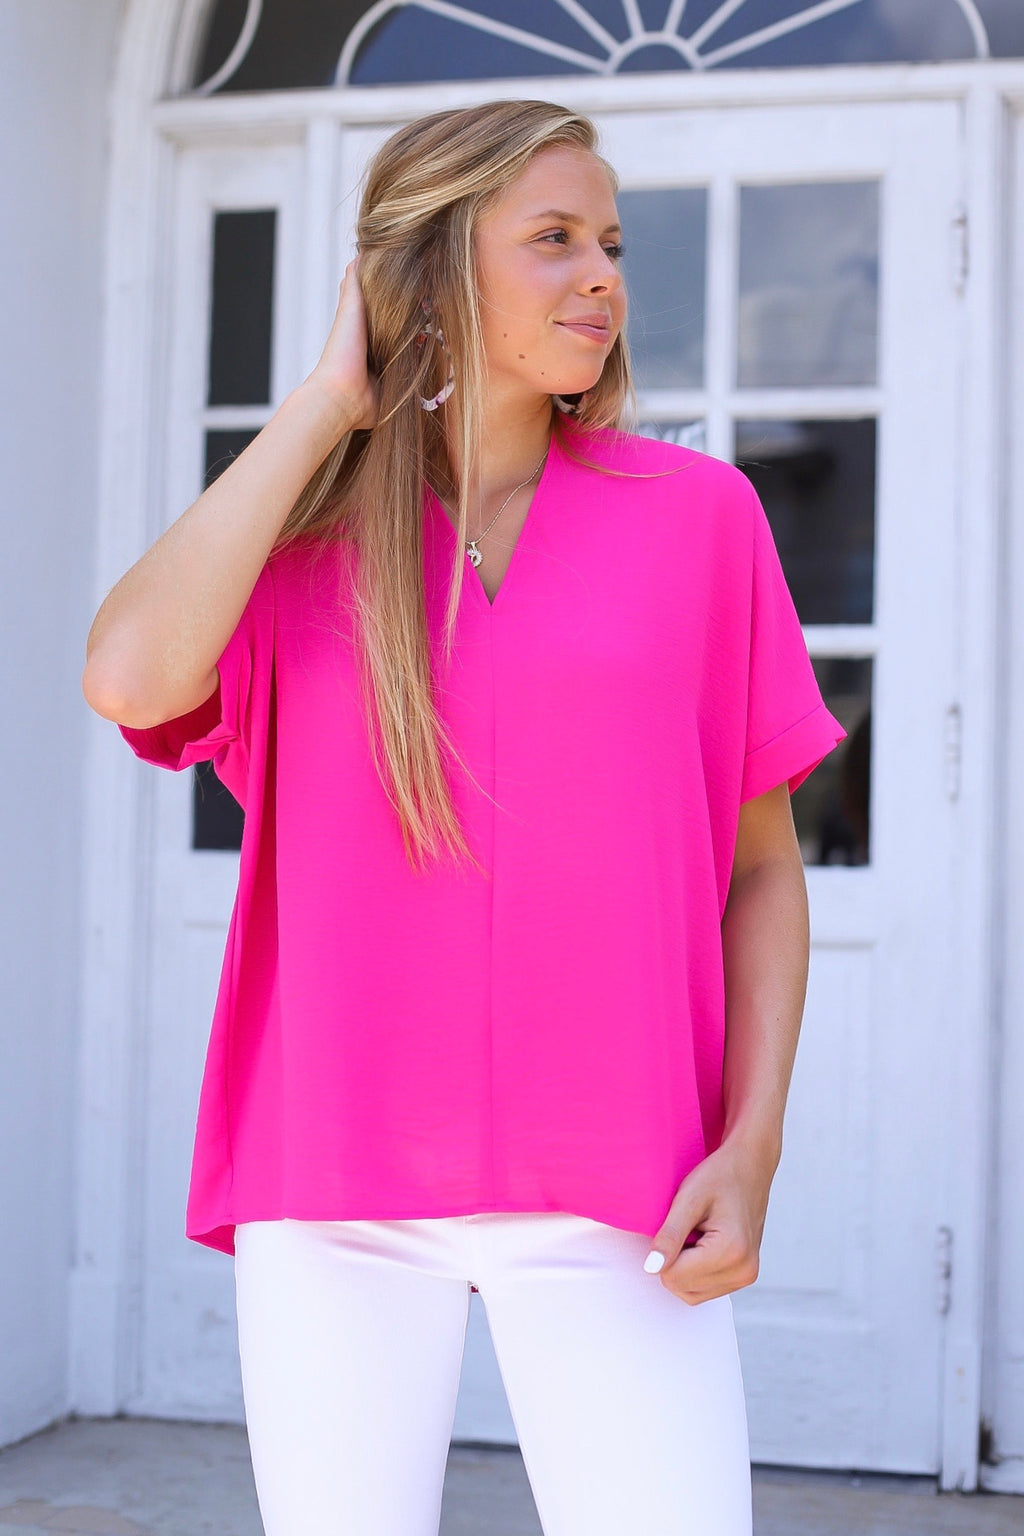 Sarah Beth Blouse In Hot Pink